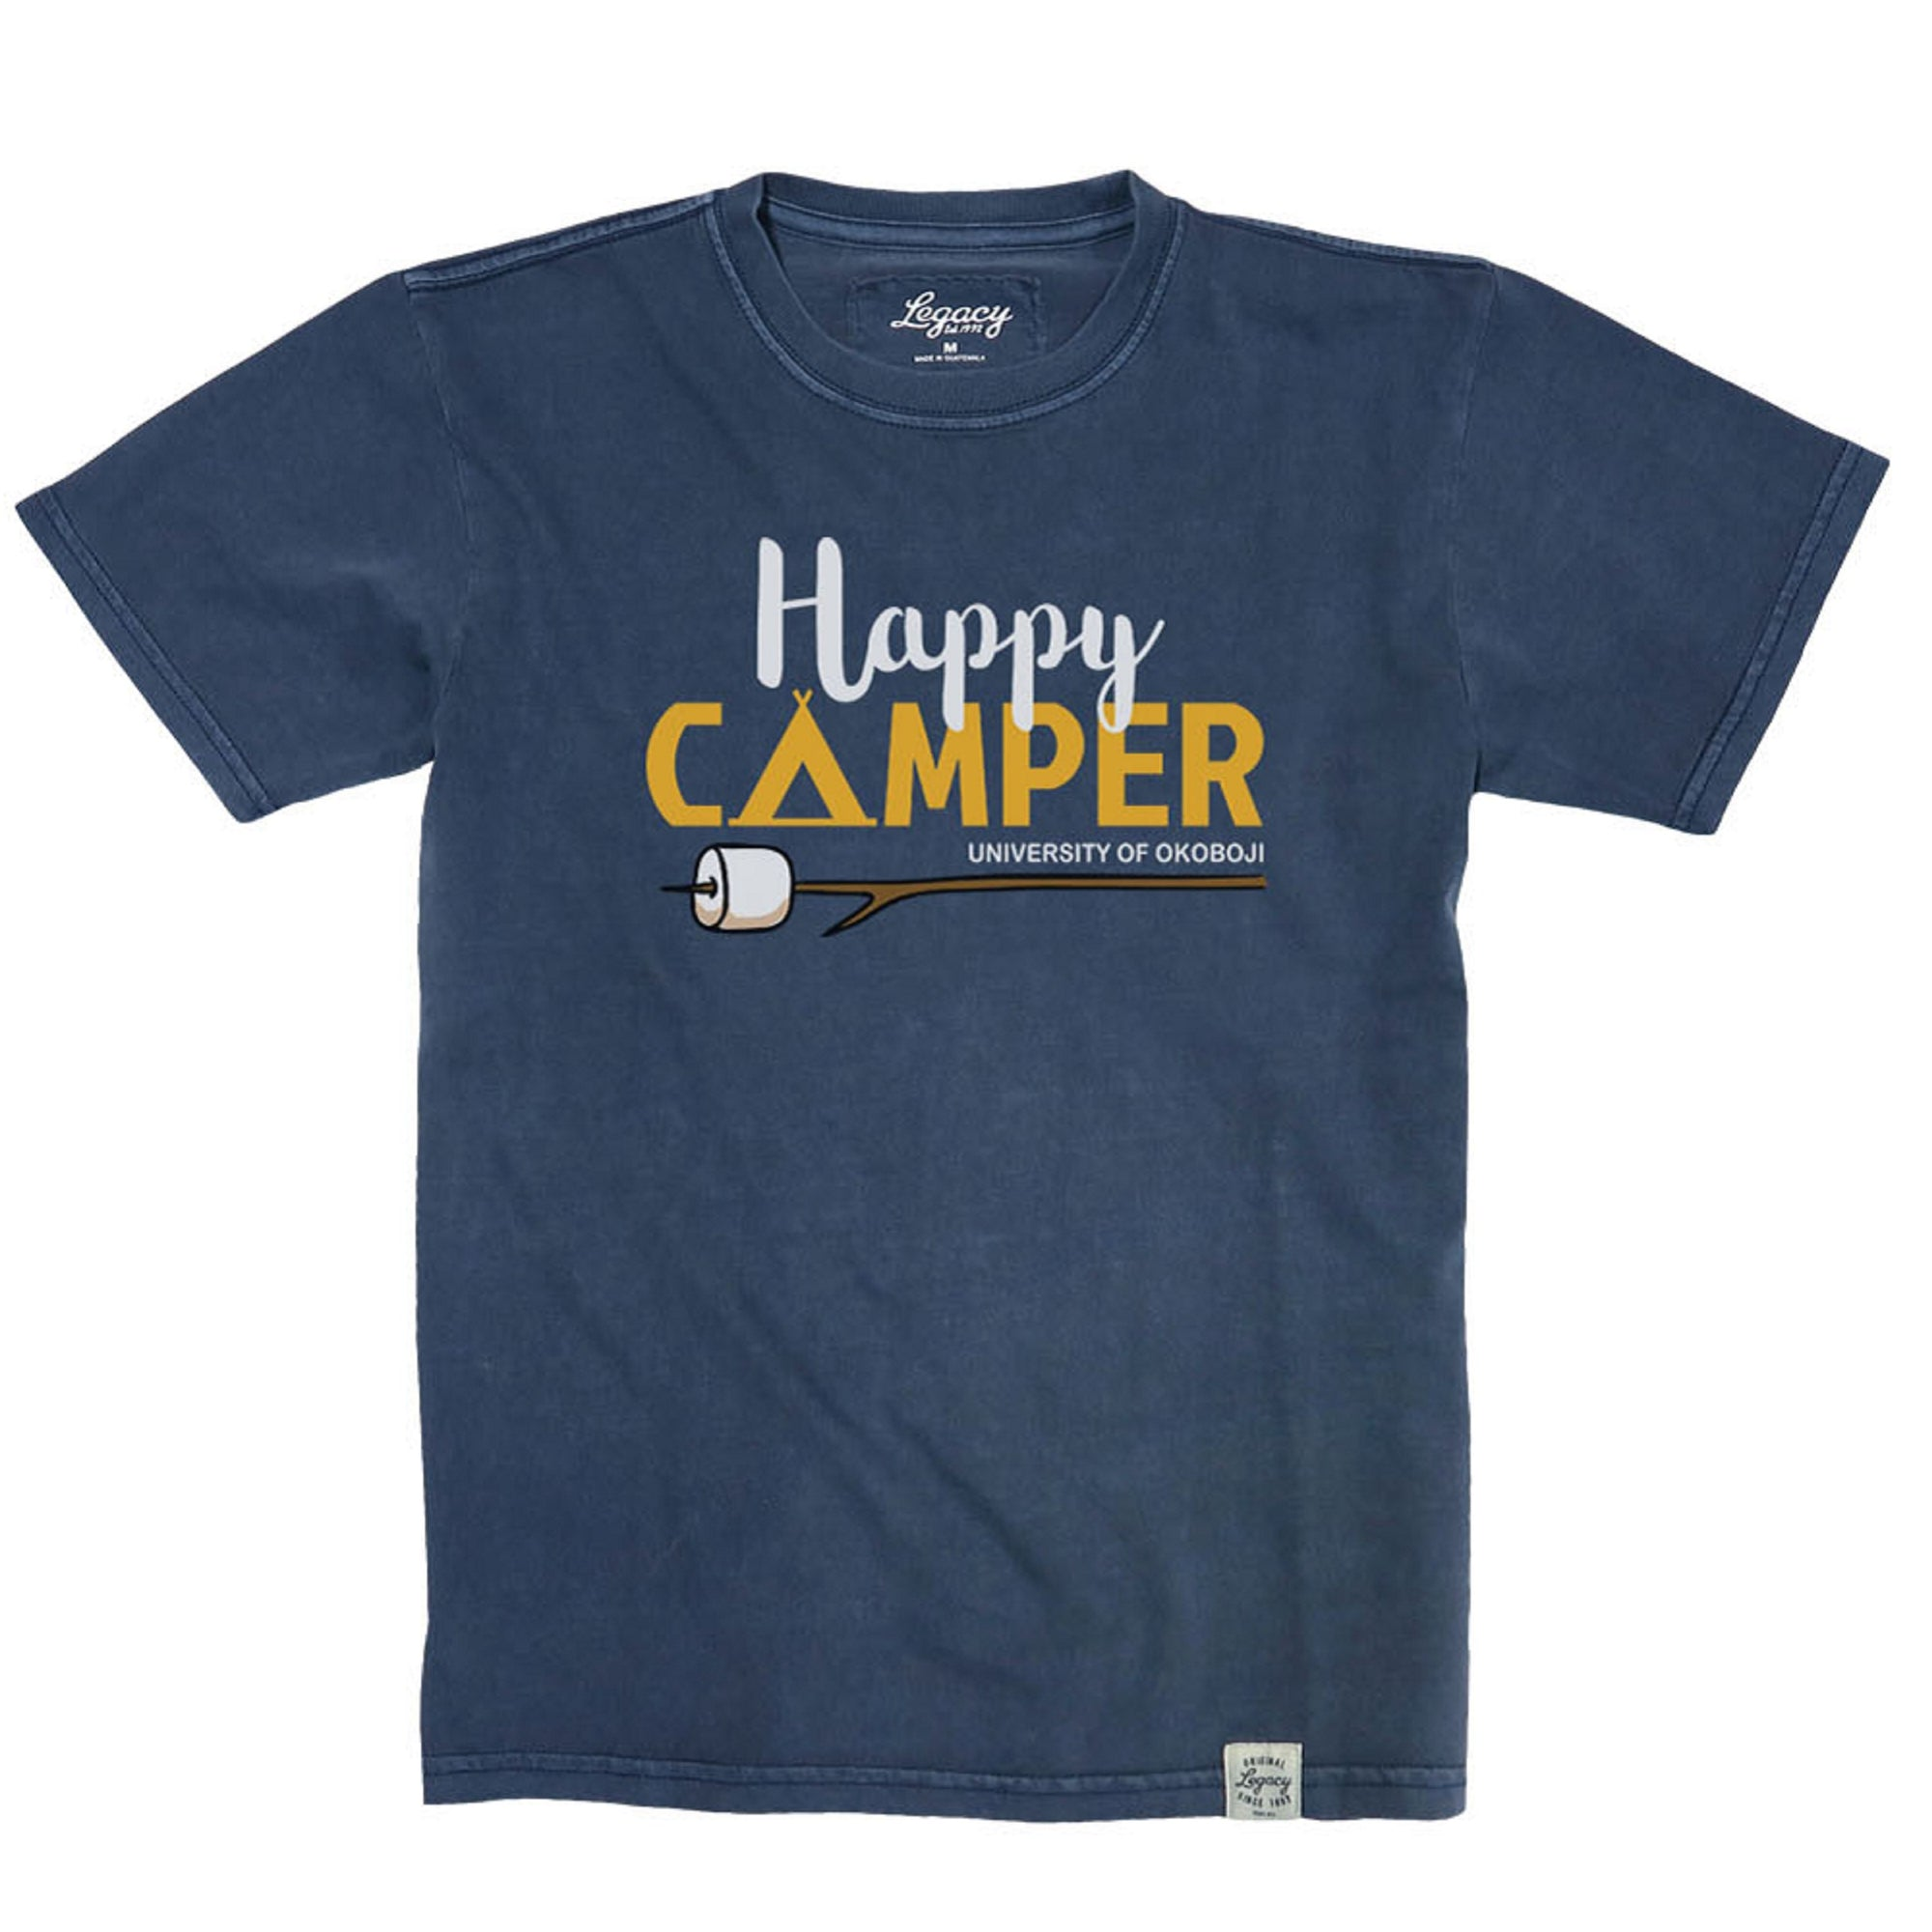 U of O Little Happy Camper Youth Vintage Wash Crewneck Tee